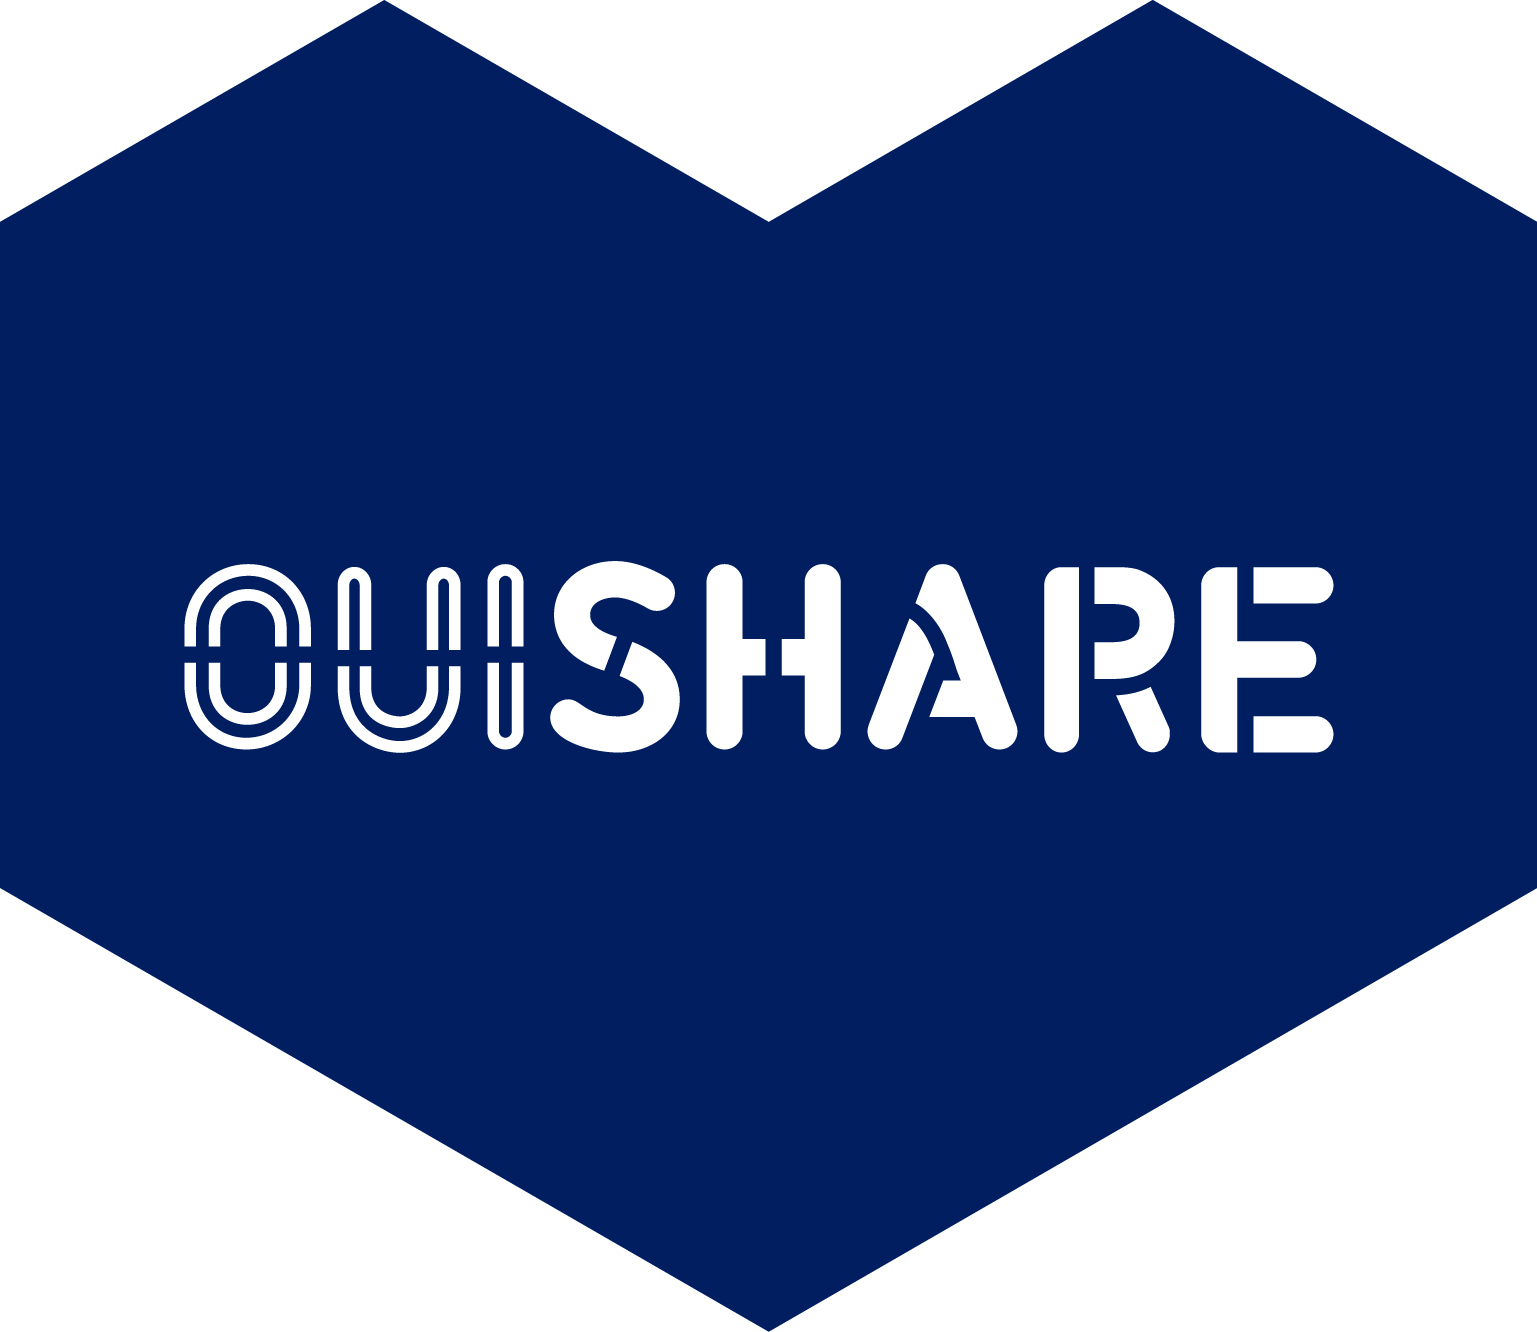 LOGO OUISHARE Global COEUR RGB